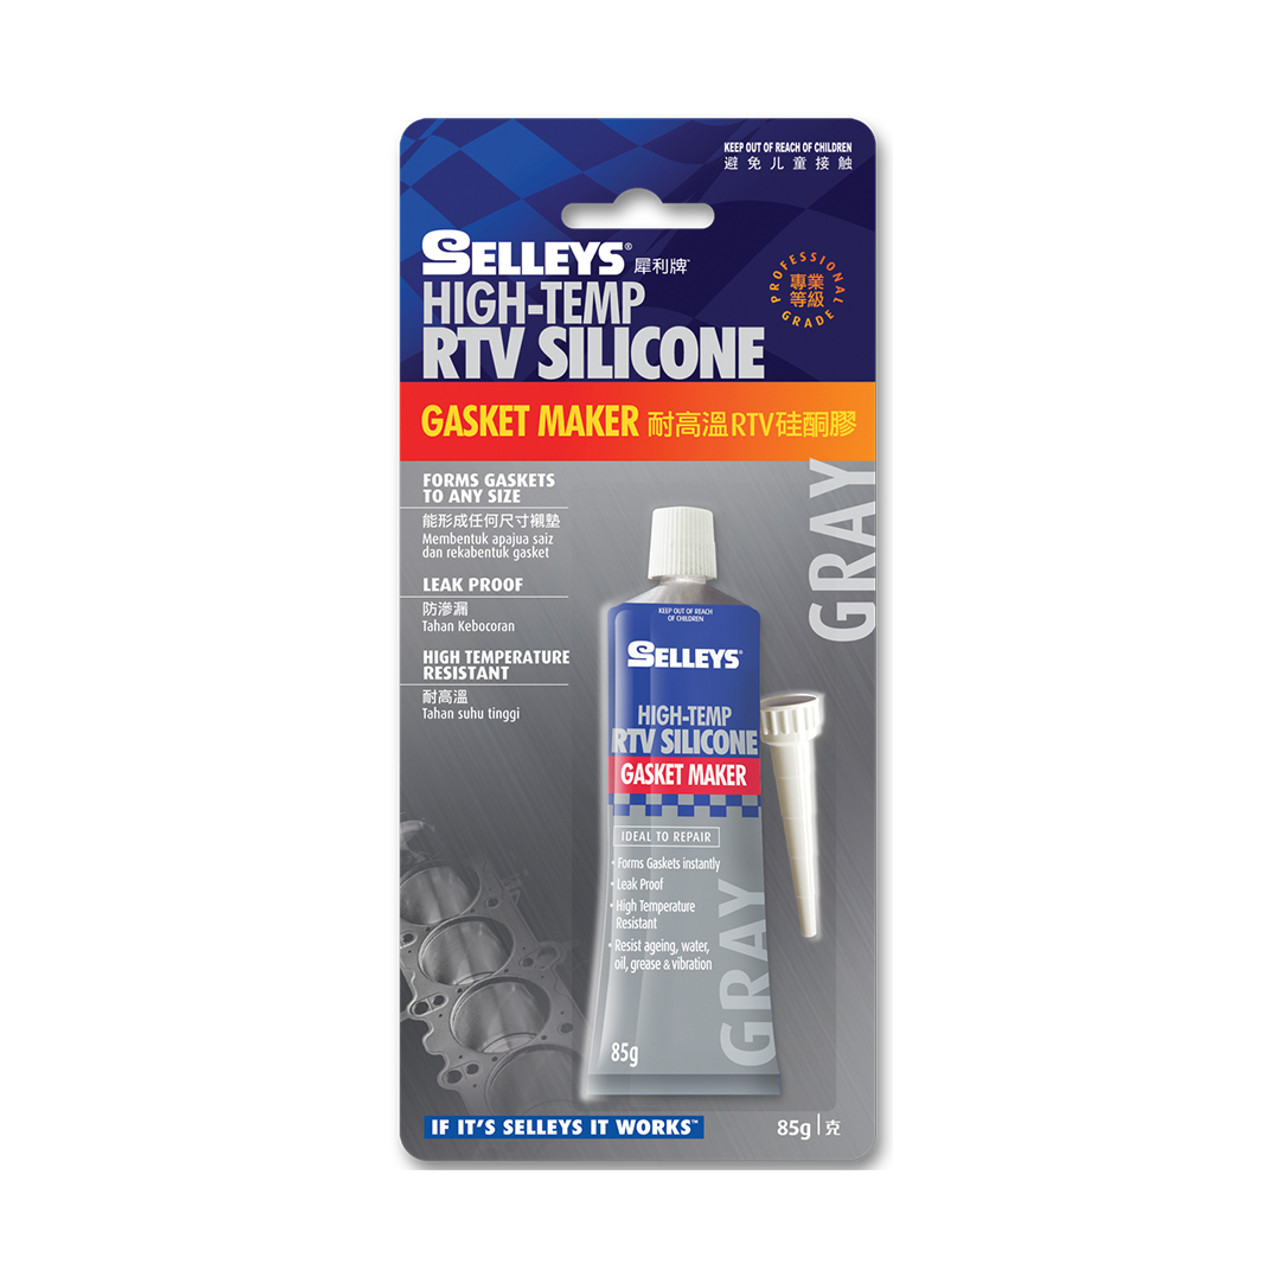 Selleys High-Temp Rtv Silicone (Gray) 85G - Goldunited Sdn Bhd